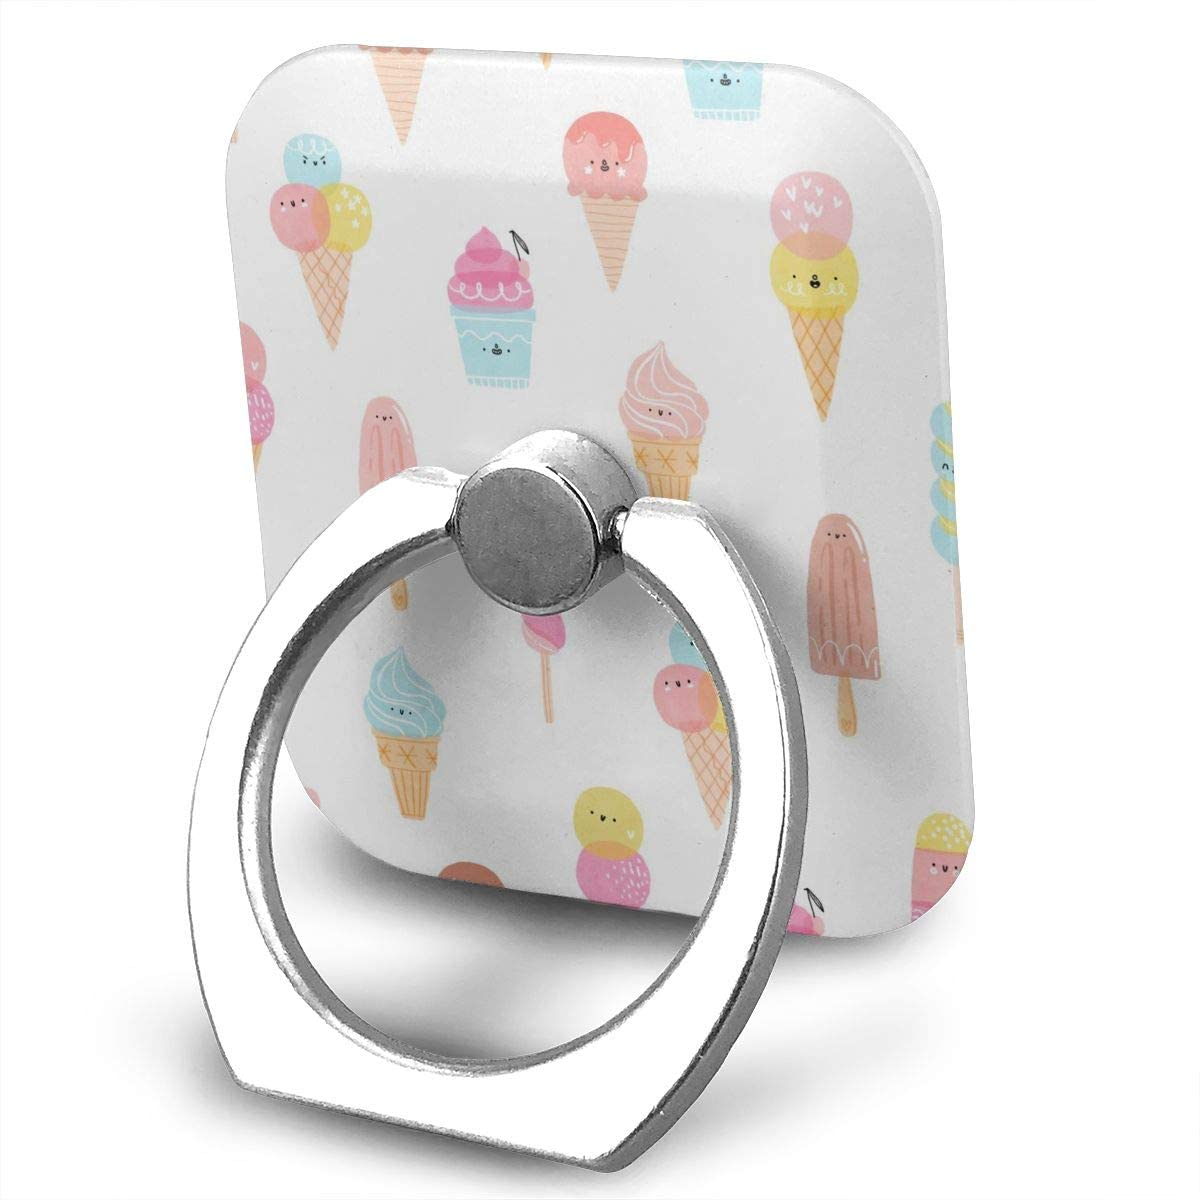 SLHFPX Universal Phone Ring Holder Cute Ice Cream Square Cell Phone Ring Stand Adjustable 360°Rotation Finger Kickstand Grip-Silver Mobile Phone Stand for Women Kids Men Ladies Smartphones